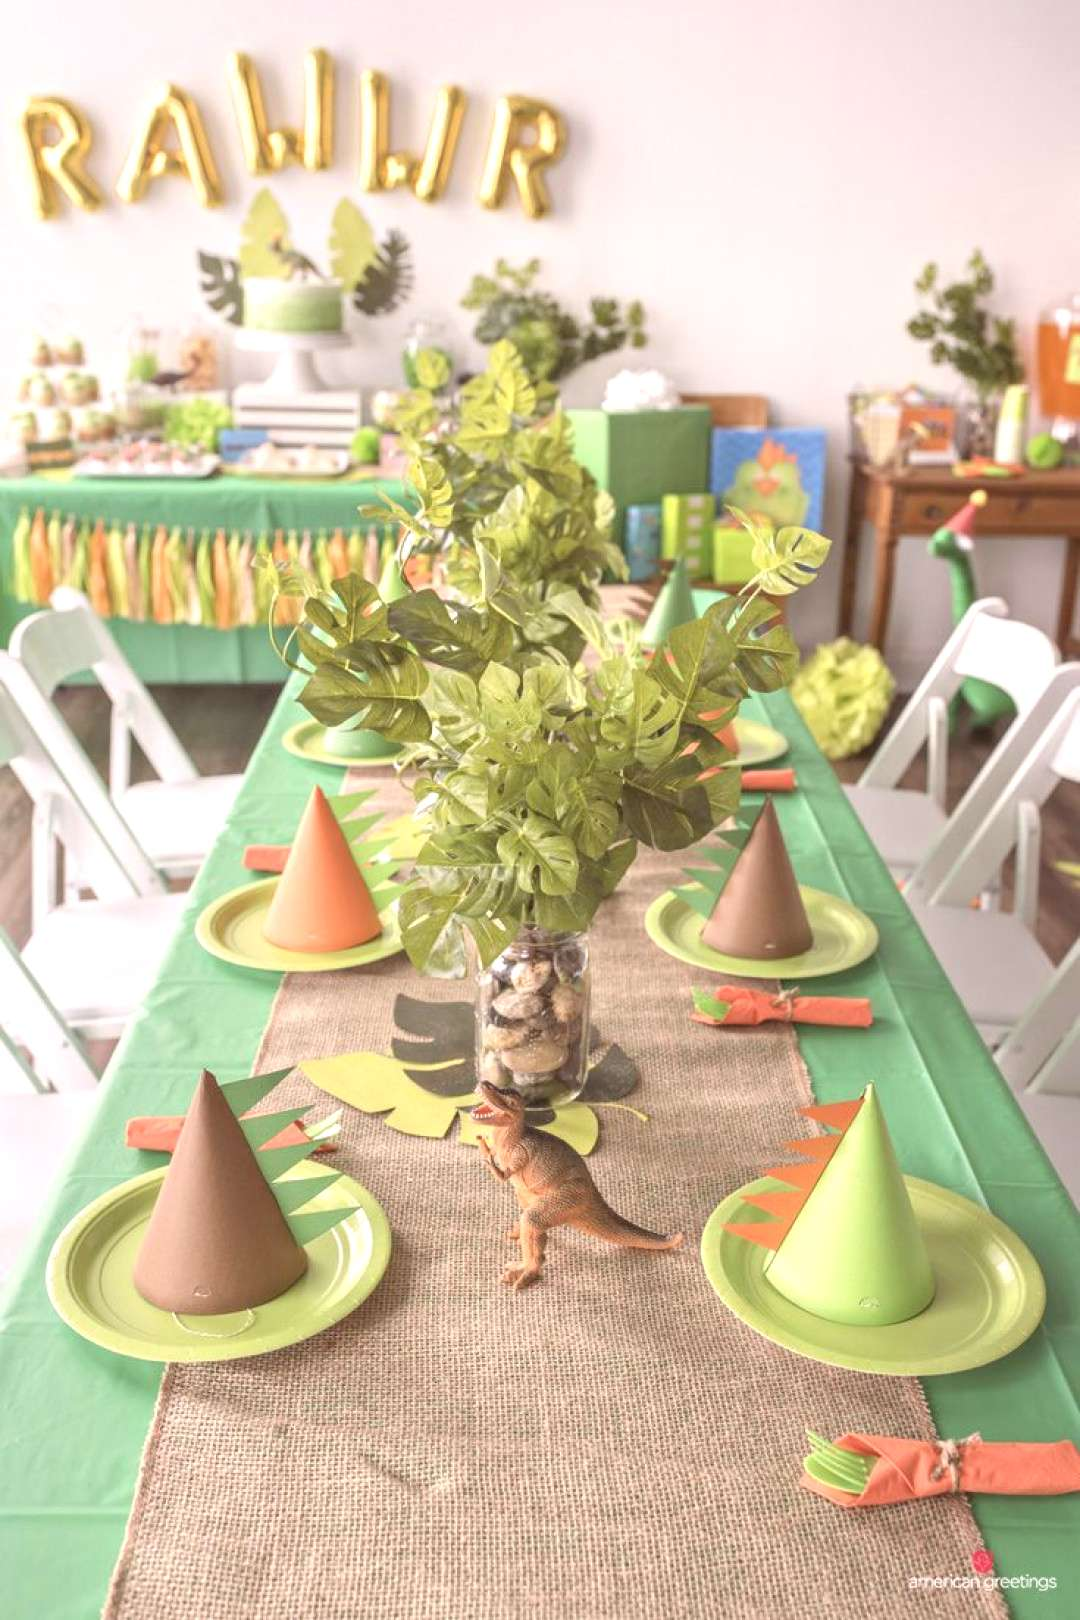 Birthday Party Ideas Dinosaurs may be extinct, but their timeless appeal continues to make dinosaur